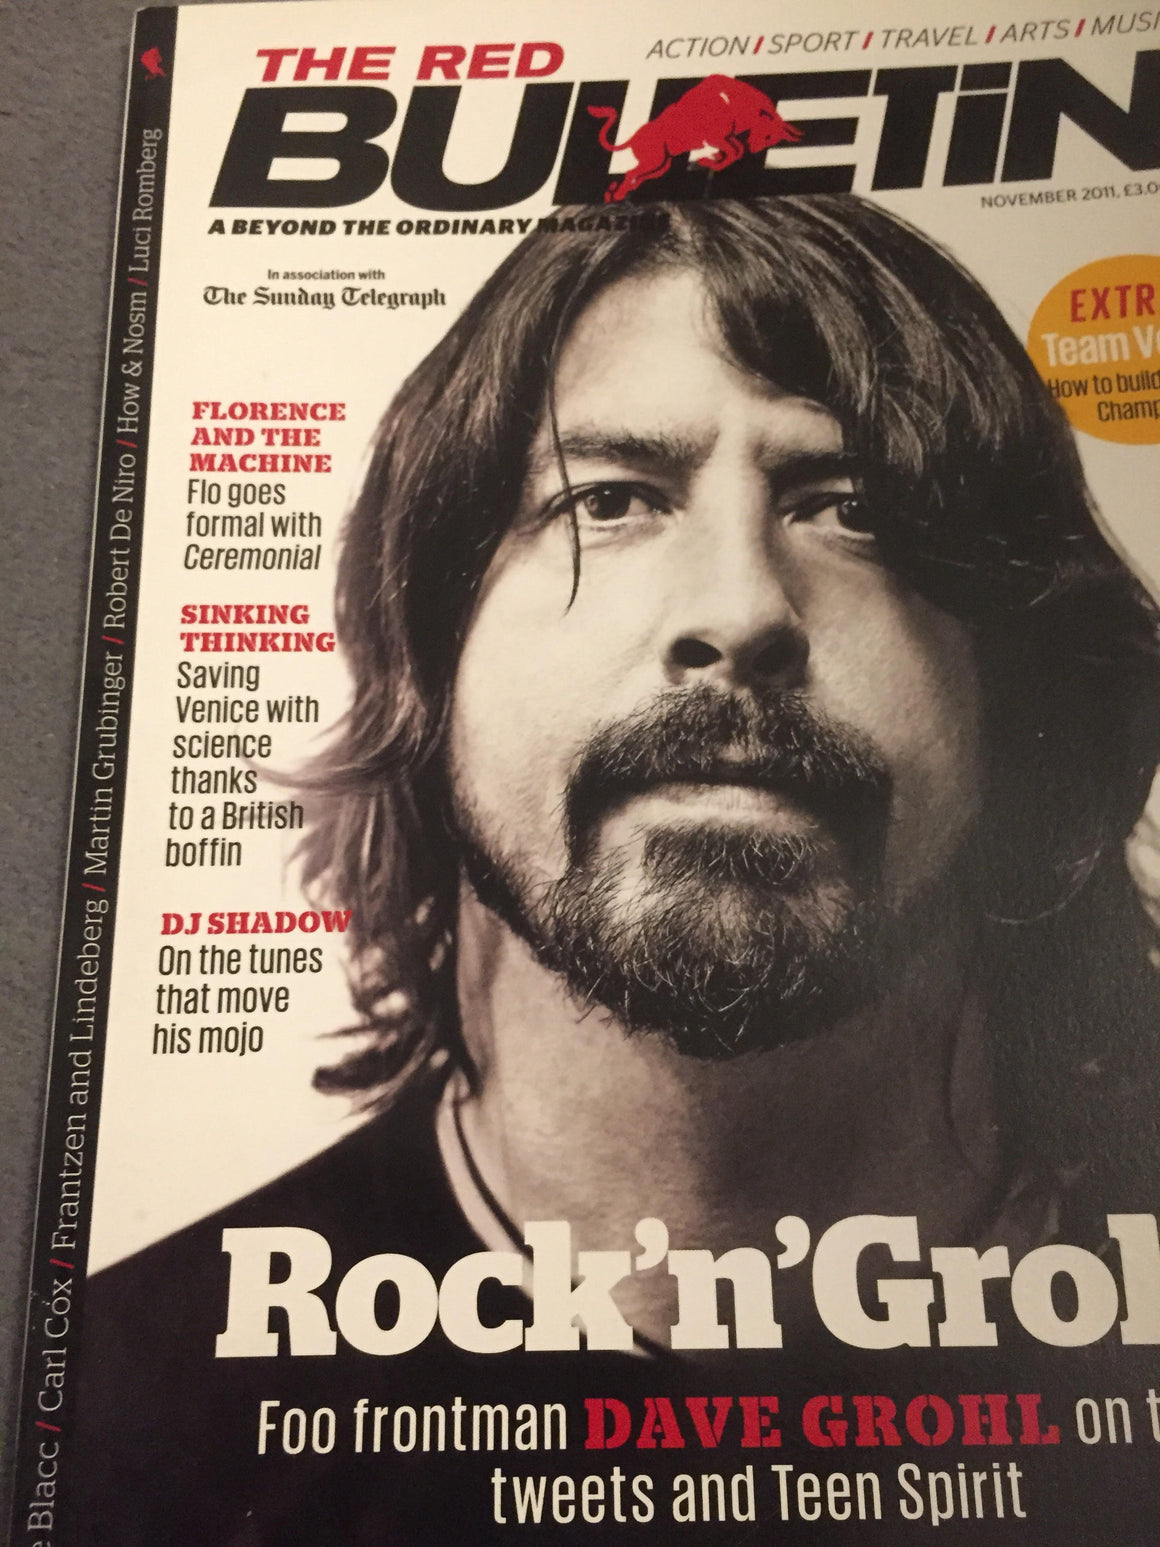 RED BULLETIN MAGAZINE NOVEMBER 2010: DAVE GROHL FLORENCE WELCH AND THE MACHINE